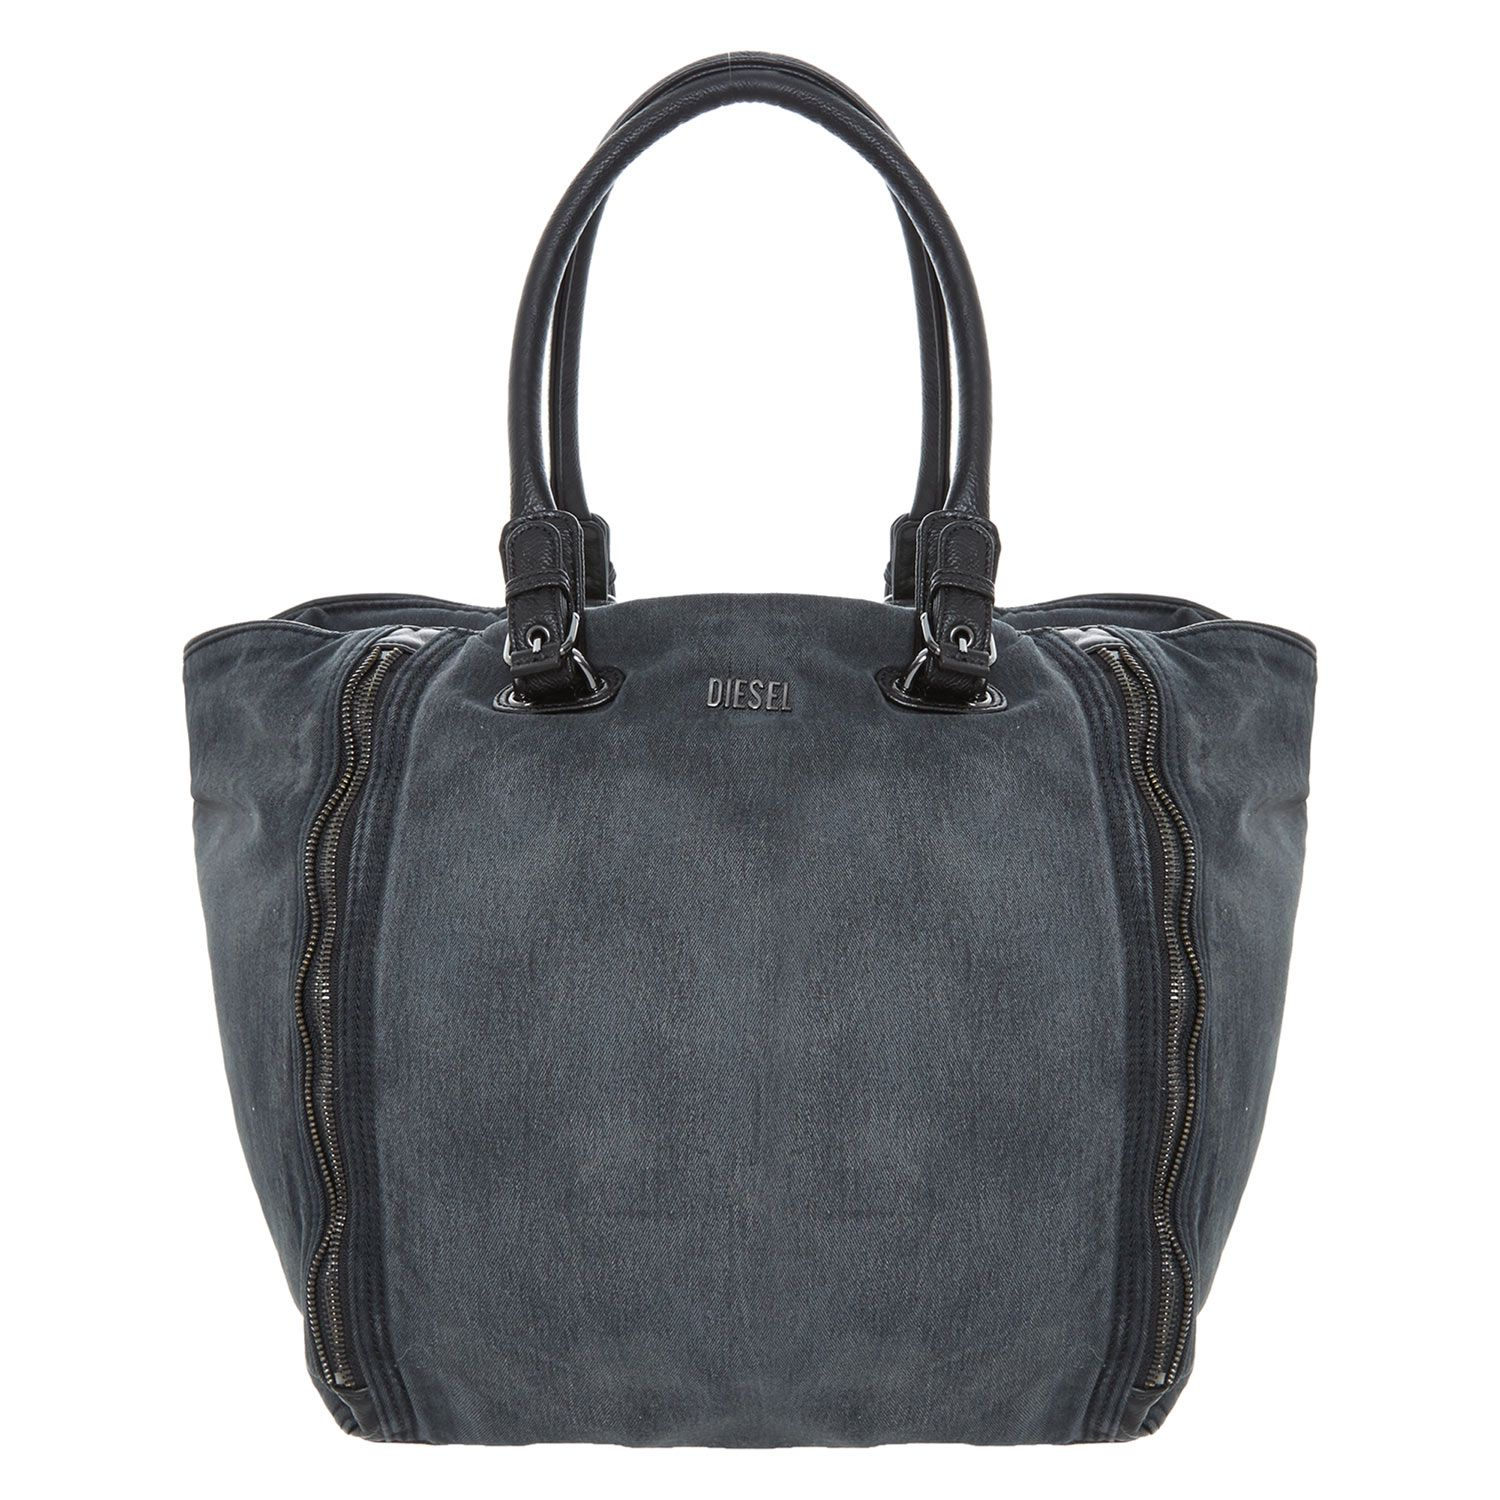 68a8cecab32f Pin by saleha khatun on Bags | Denim shoulder bags, Bags, Black handbags